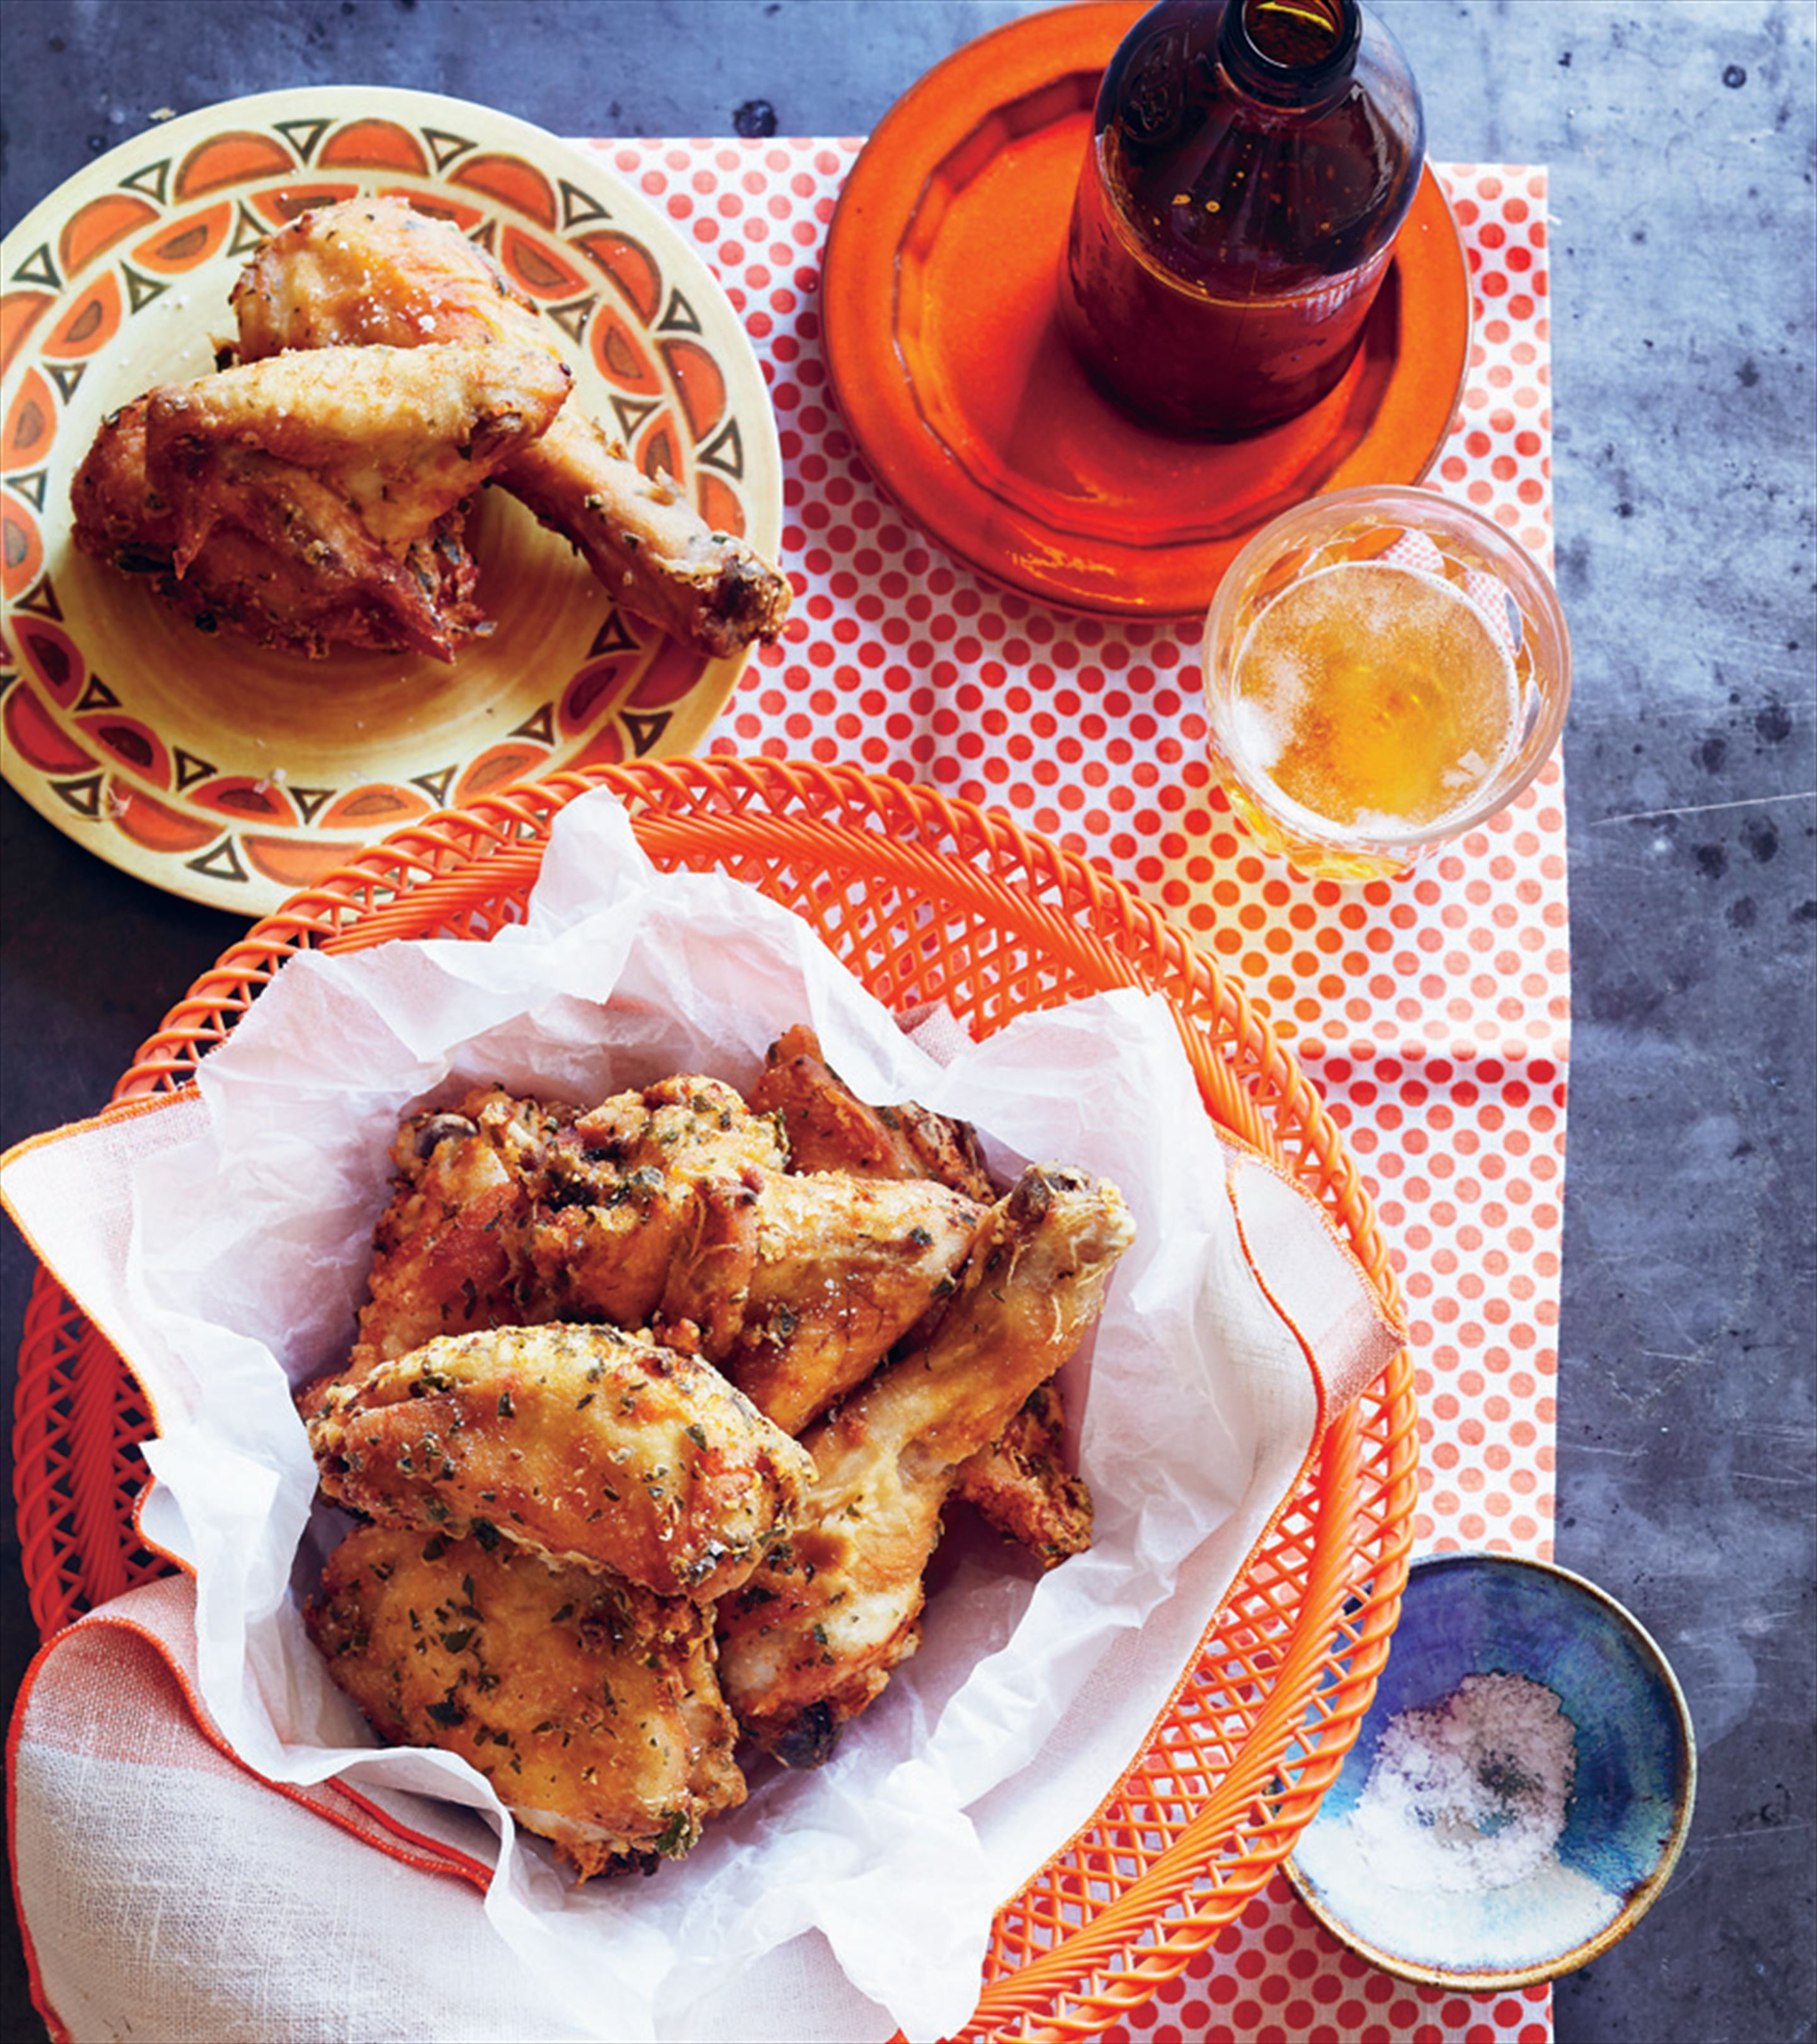 Deep-fried chicken with wine and lemon